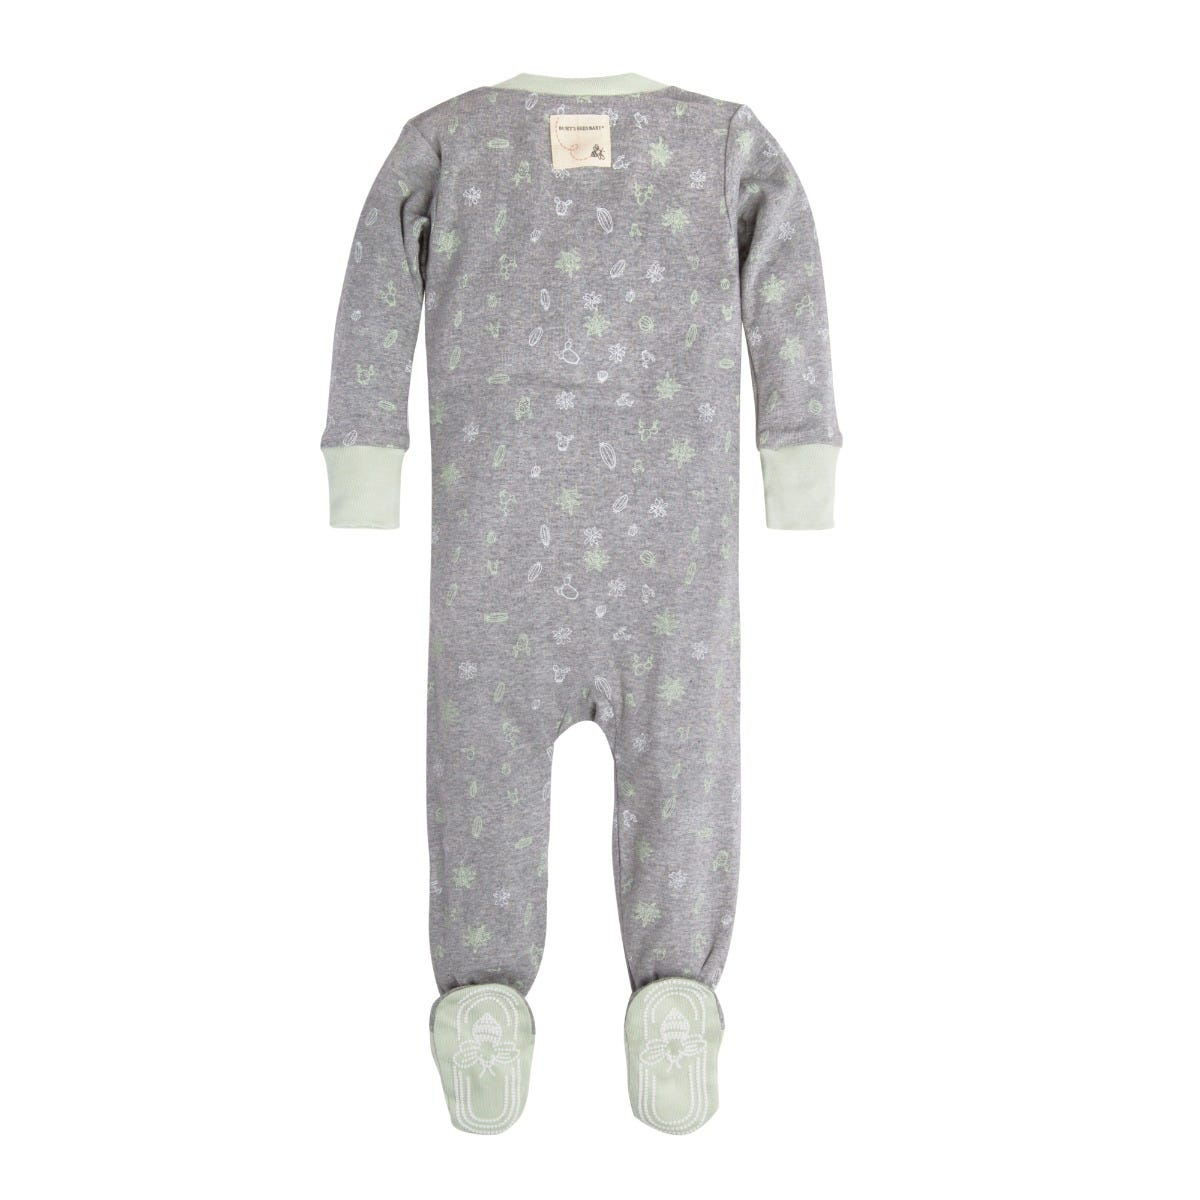 Grey, 0-3m Organic Cotton Baby Clothes Footed Romper Sleeper GOTS Certified